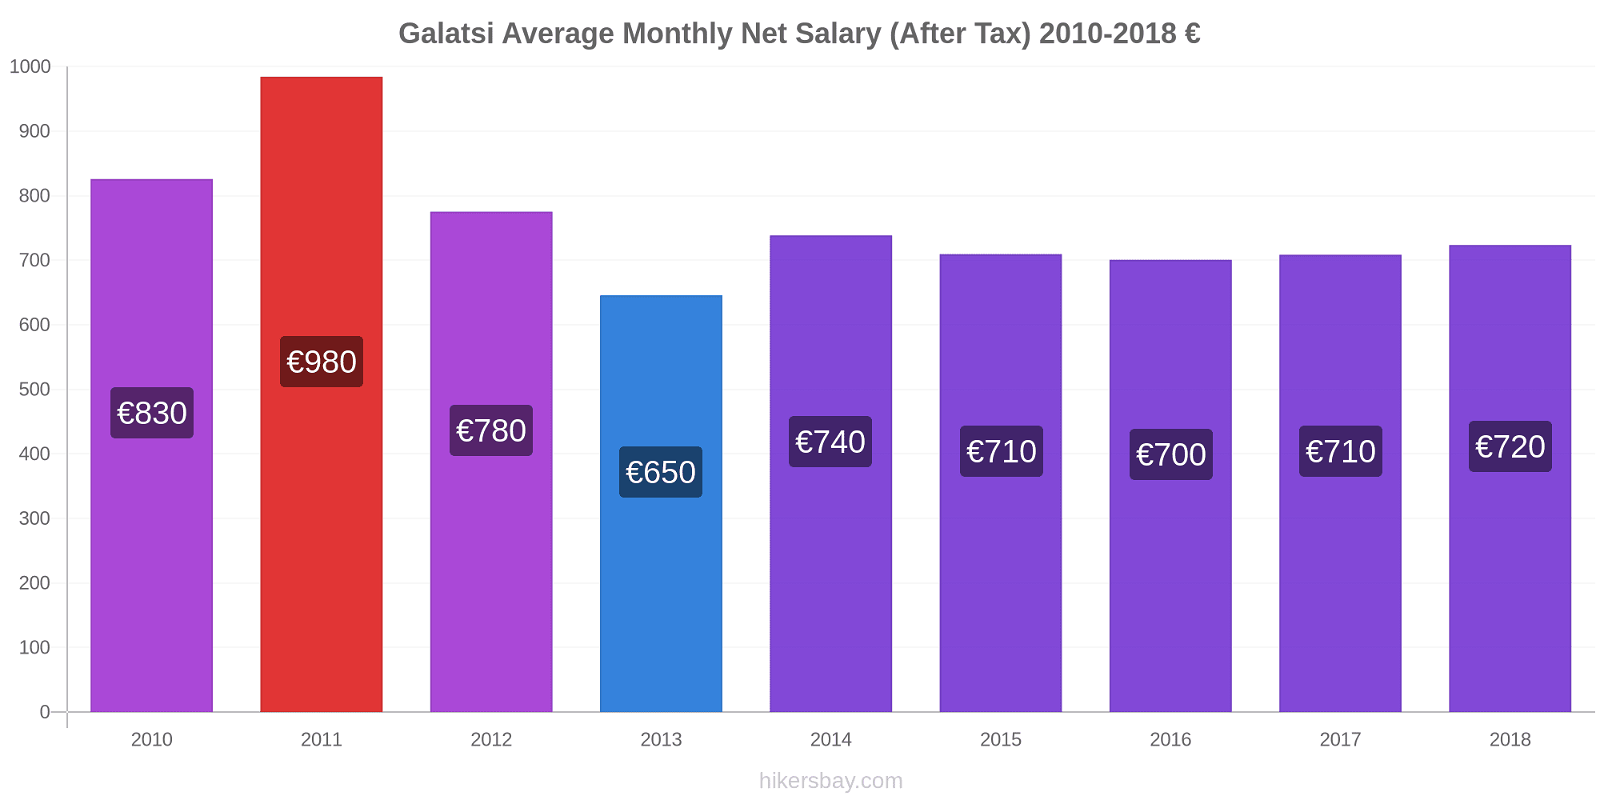 Galatsi price changes Average Monthly Net Salary (After Tax) hikersbay.com